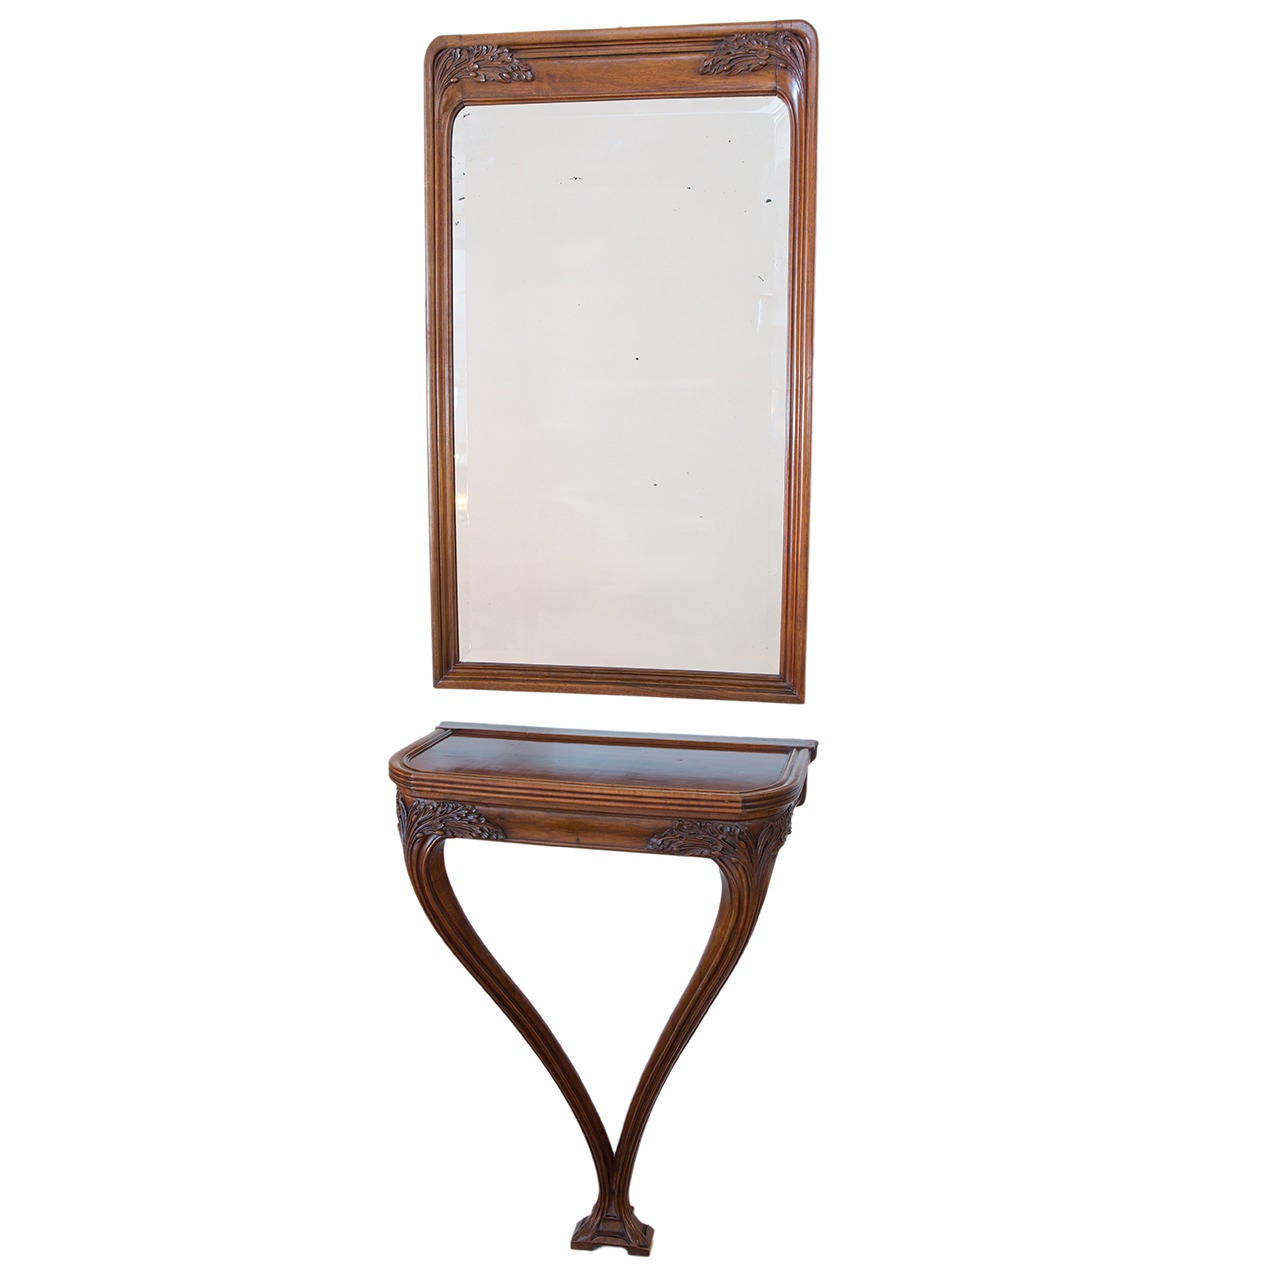 art nouveau console and mirror by louis majorelle at 1stdibs. Black Bedroom Furniture Sets. Home Design Ideas